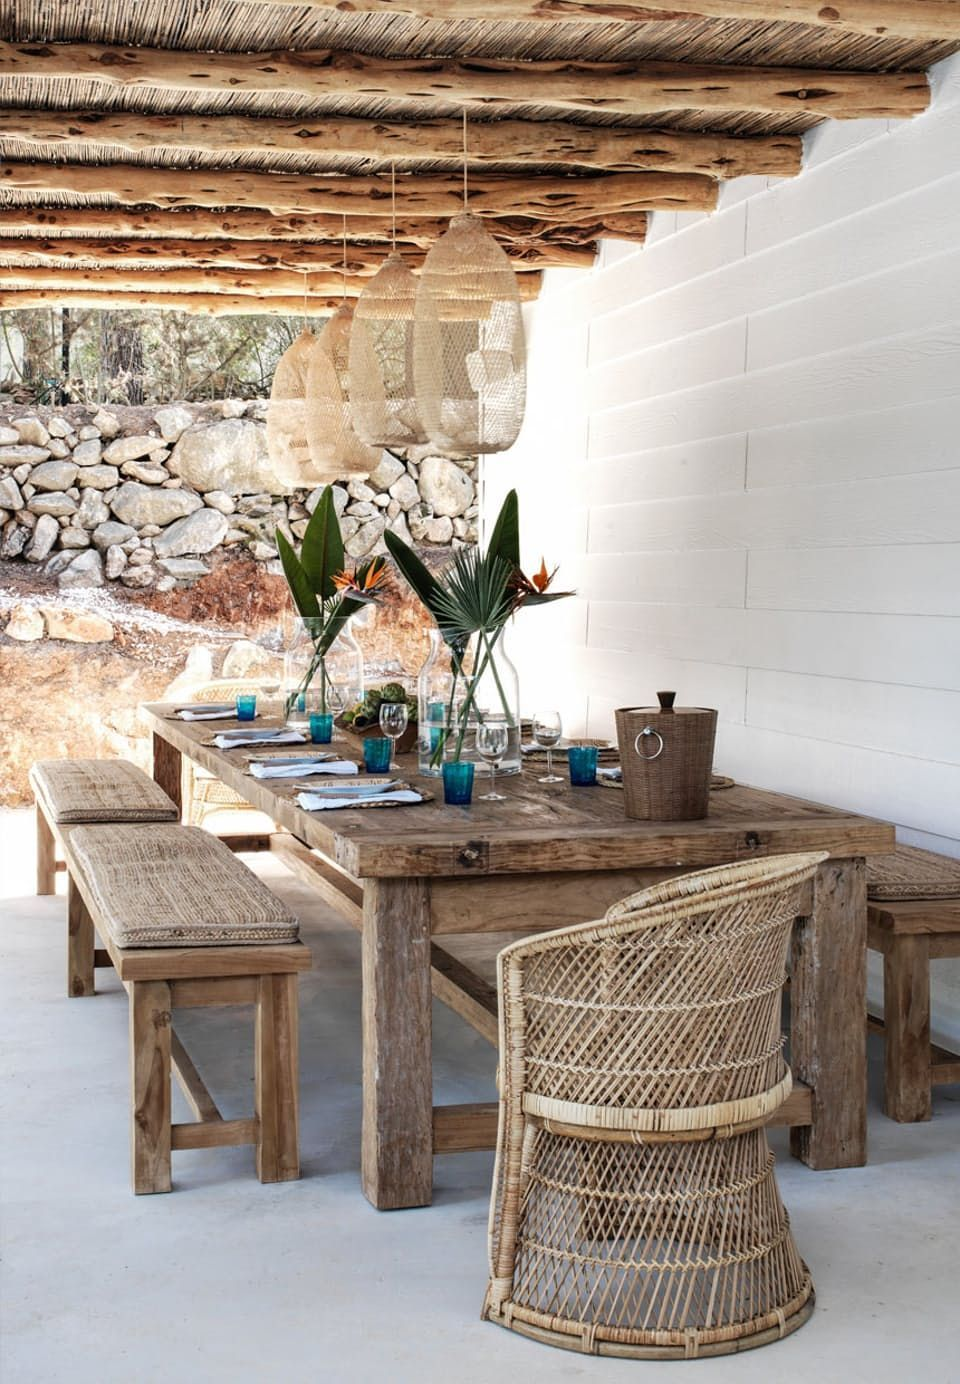 BEAUTIFUL OUTDOOR AREAS ON IBIZA, SPAIN – pickndecor.com/design